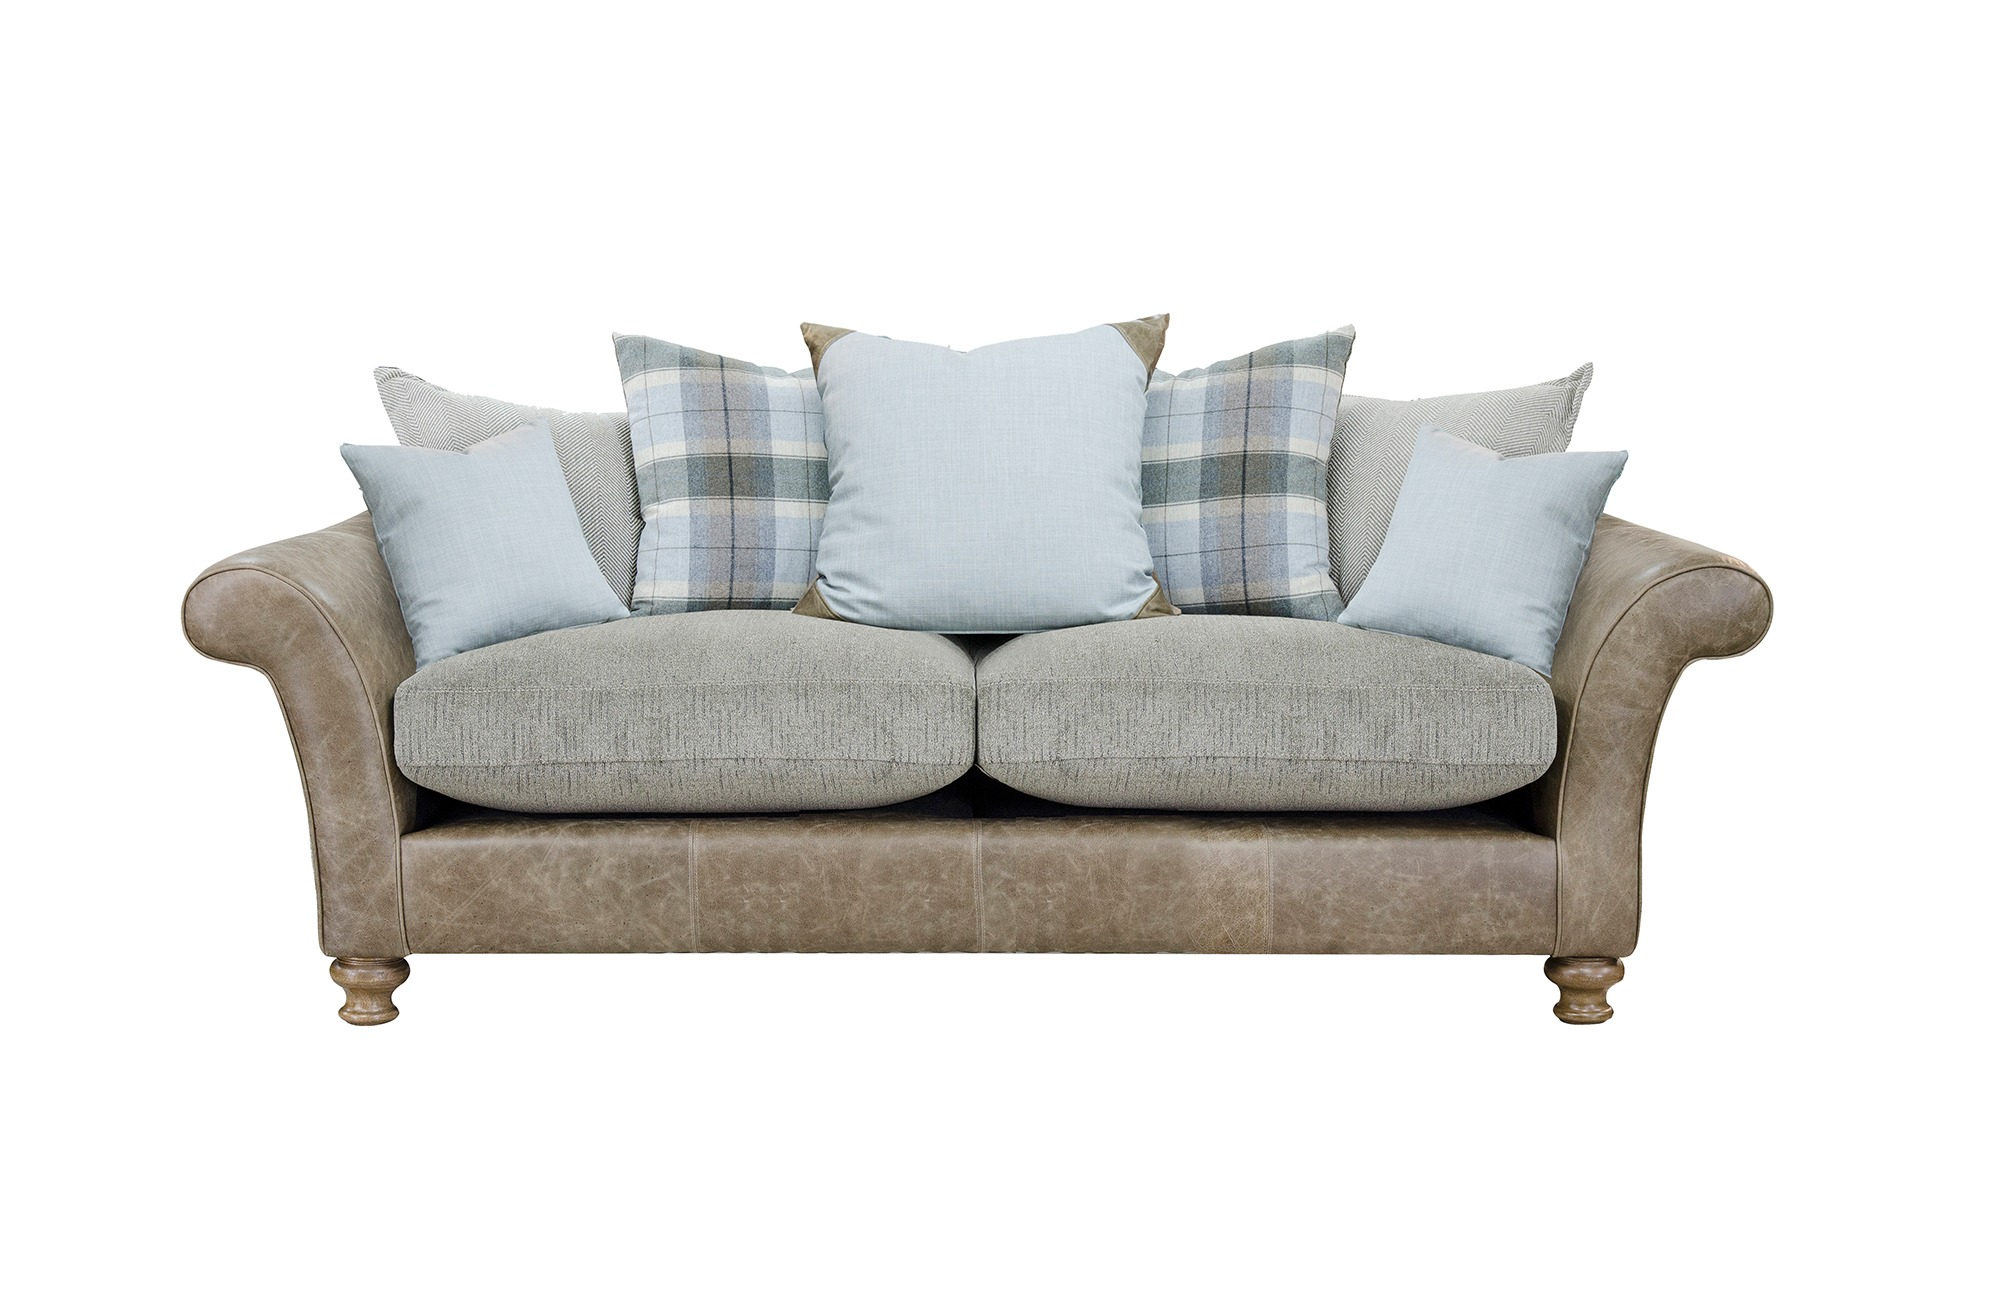 LAWRENCE 3 SEATER - PILLOW BACK